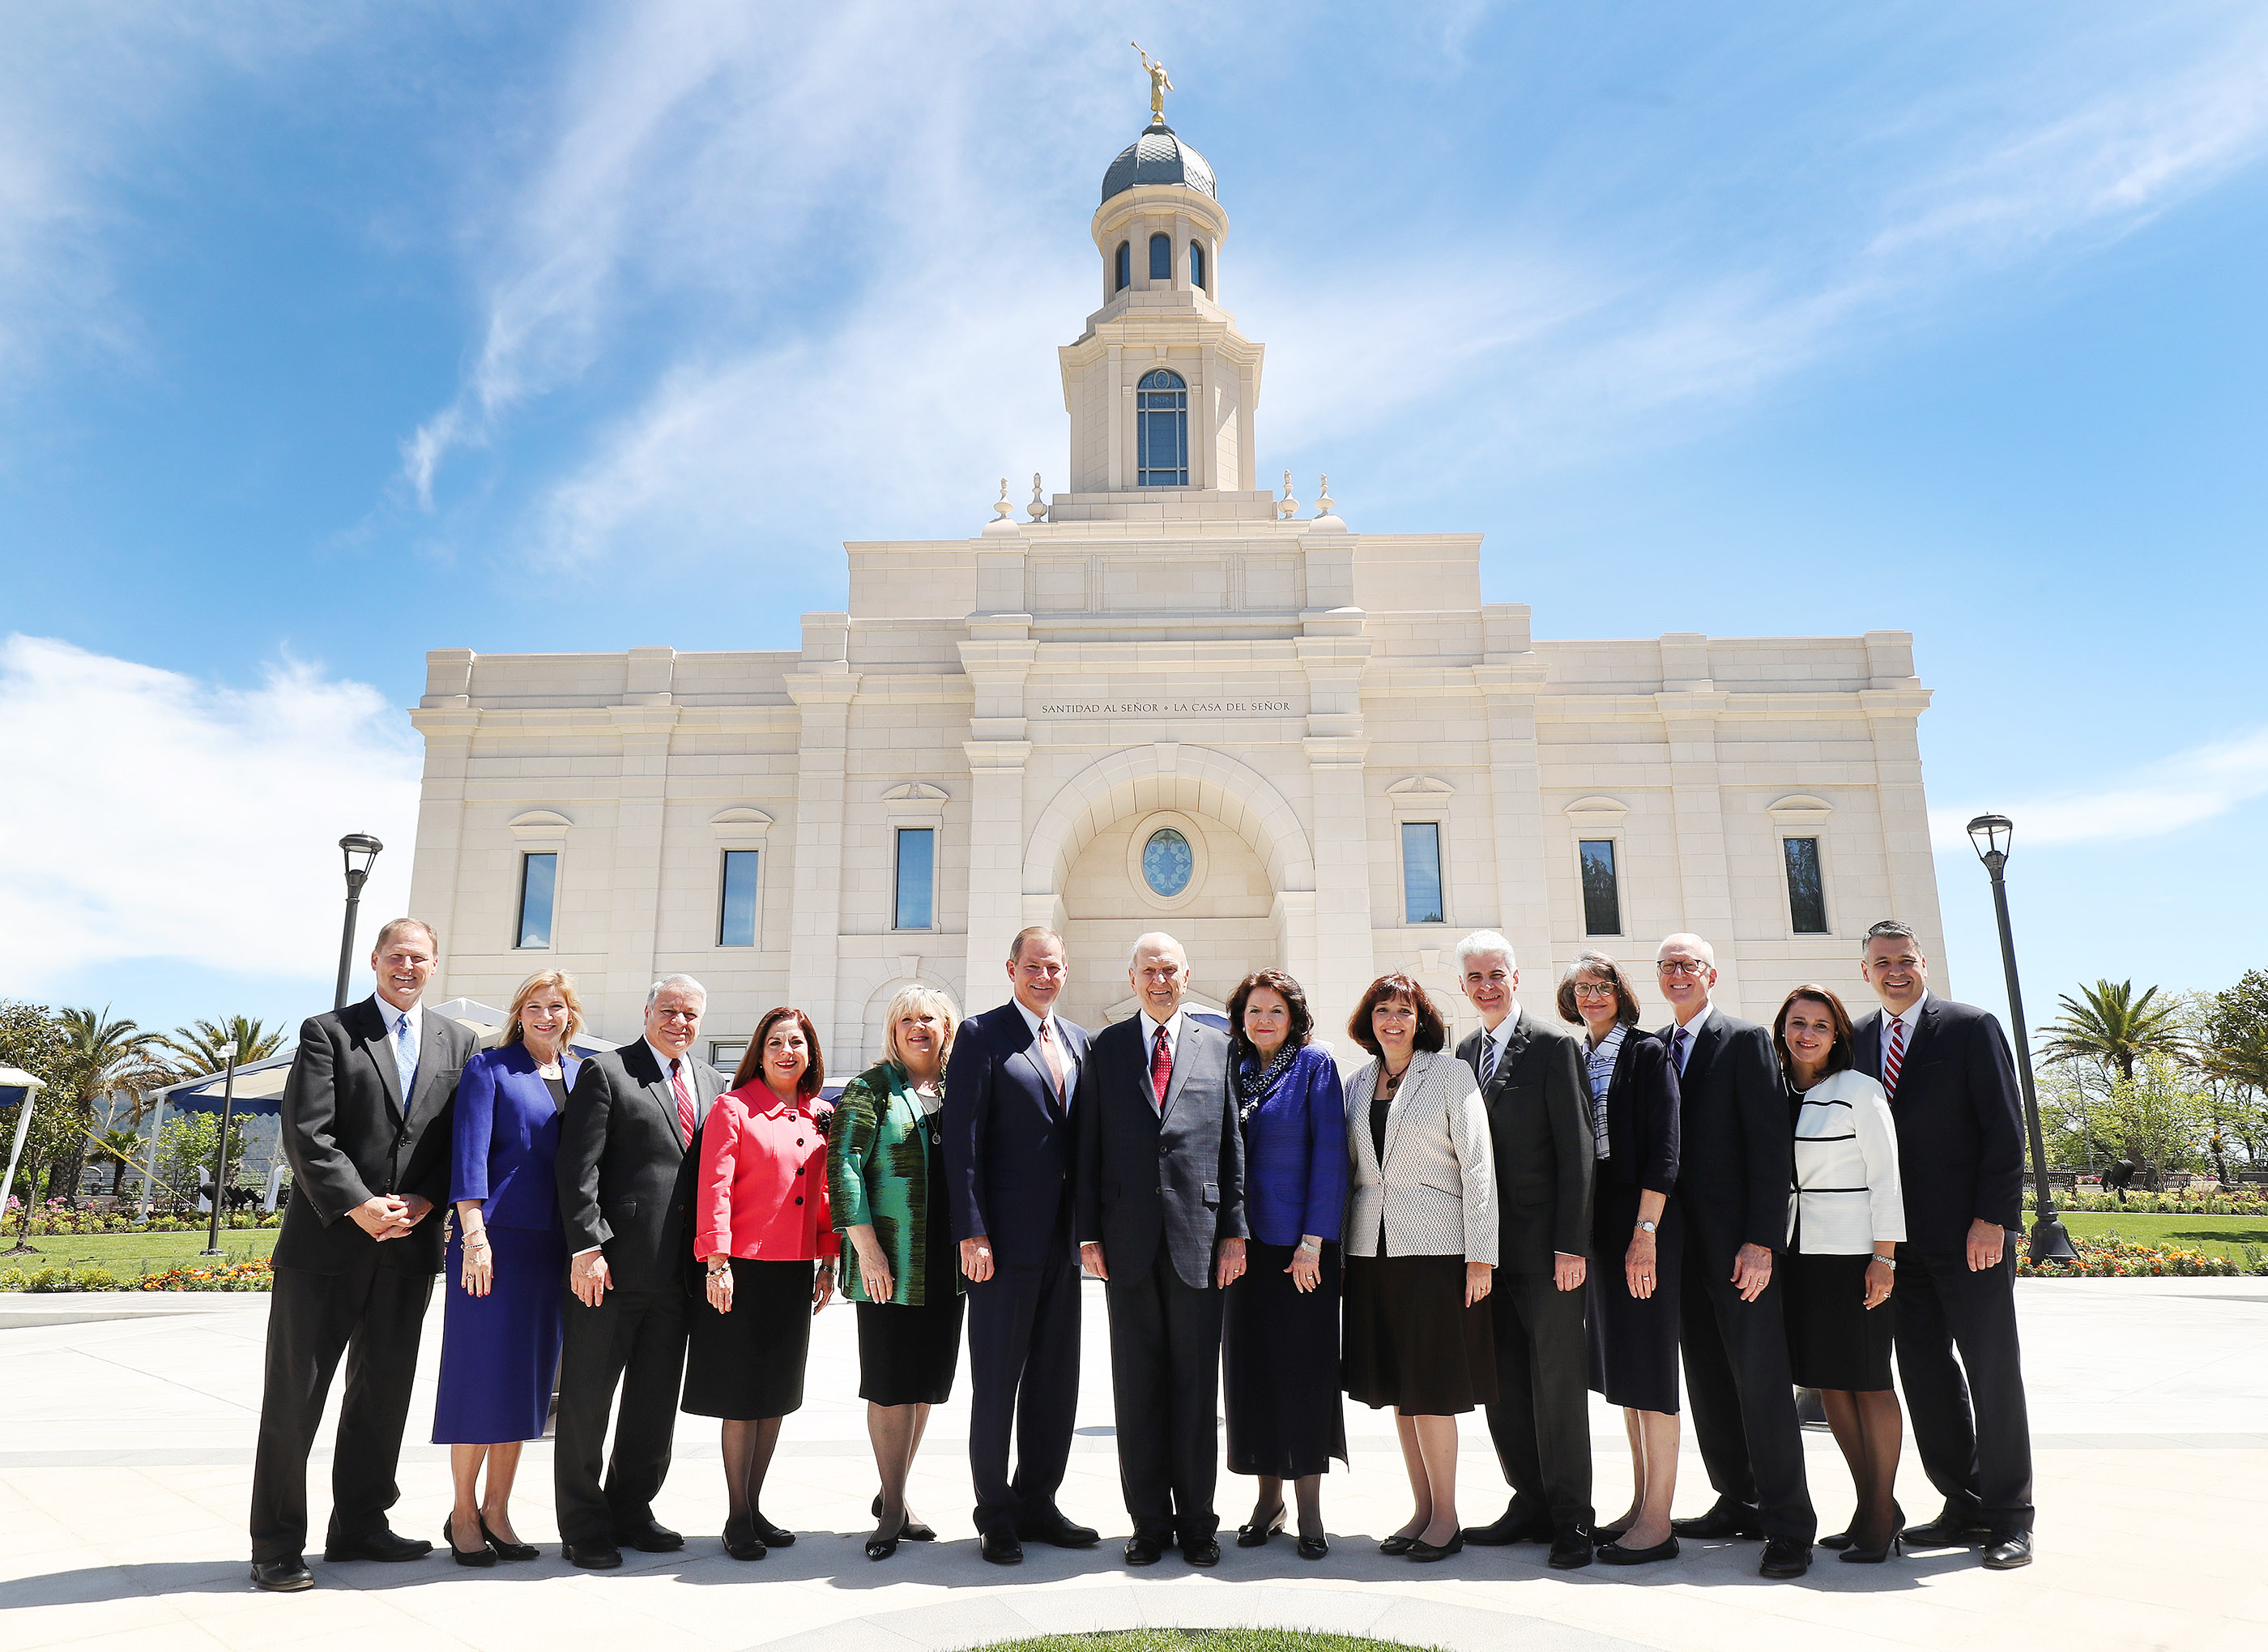 President Russell M. Nelson of The Church of Jesus Christ of Latter-day Saints and his wife, Sister Wendy Nelson. Also pictured are Elder Gary E. Stevenson of the Quorum of the Twelve Apostles and his wife, Sister Lesa Stevenson, with other Church leaders near the temple in Concepcion, Chile, on Saturday, Oct. 27, 2018.